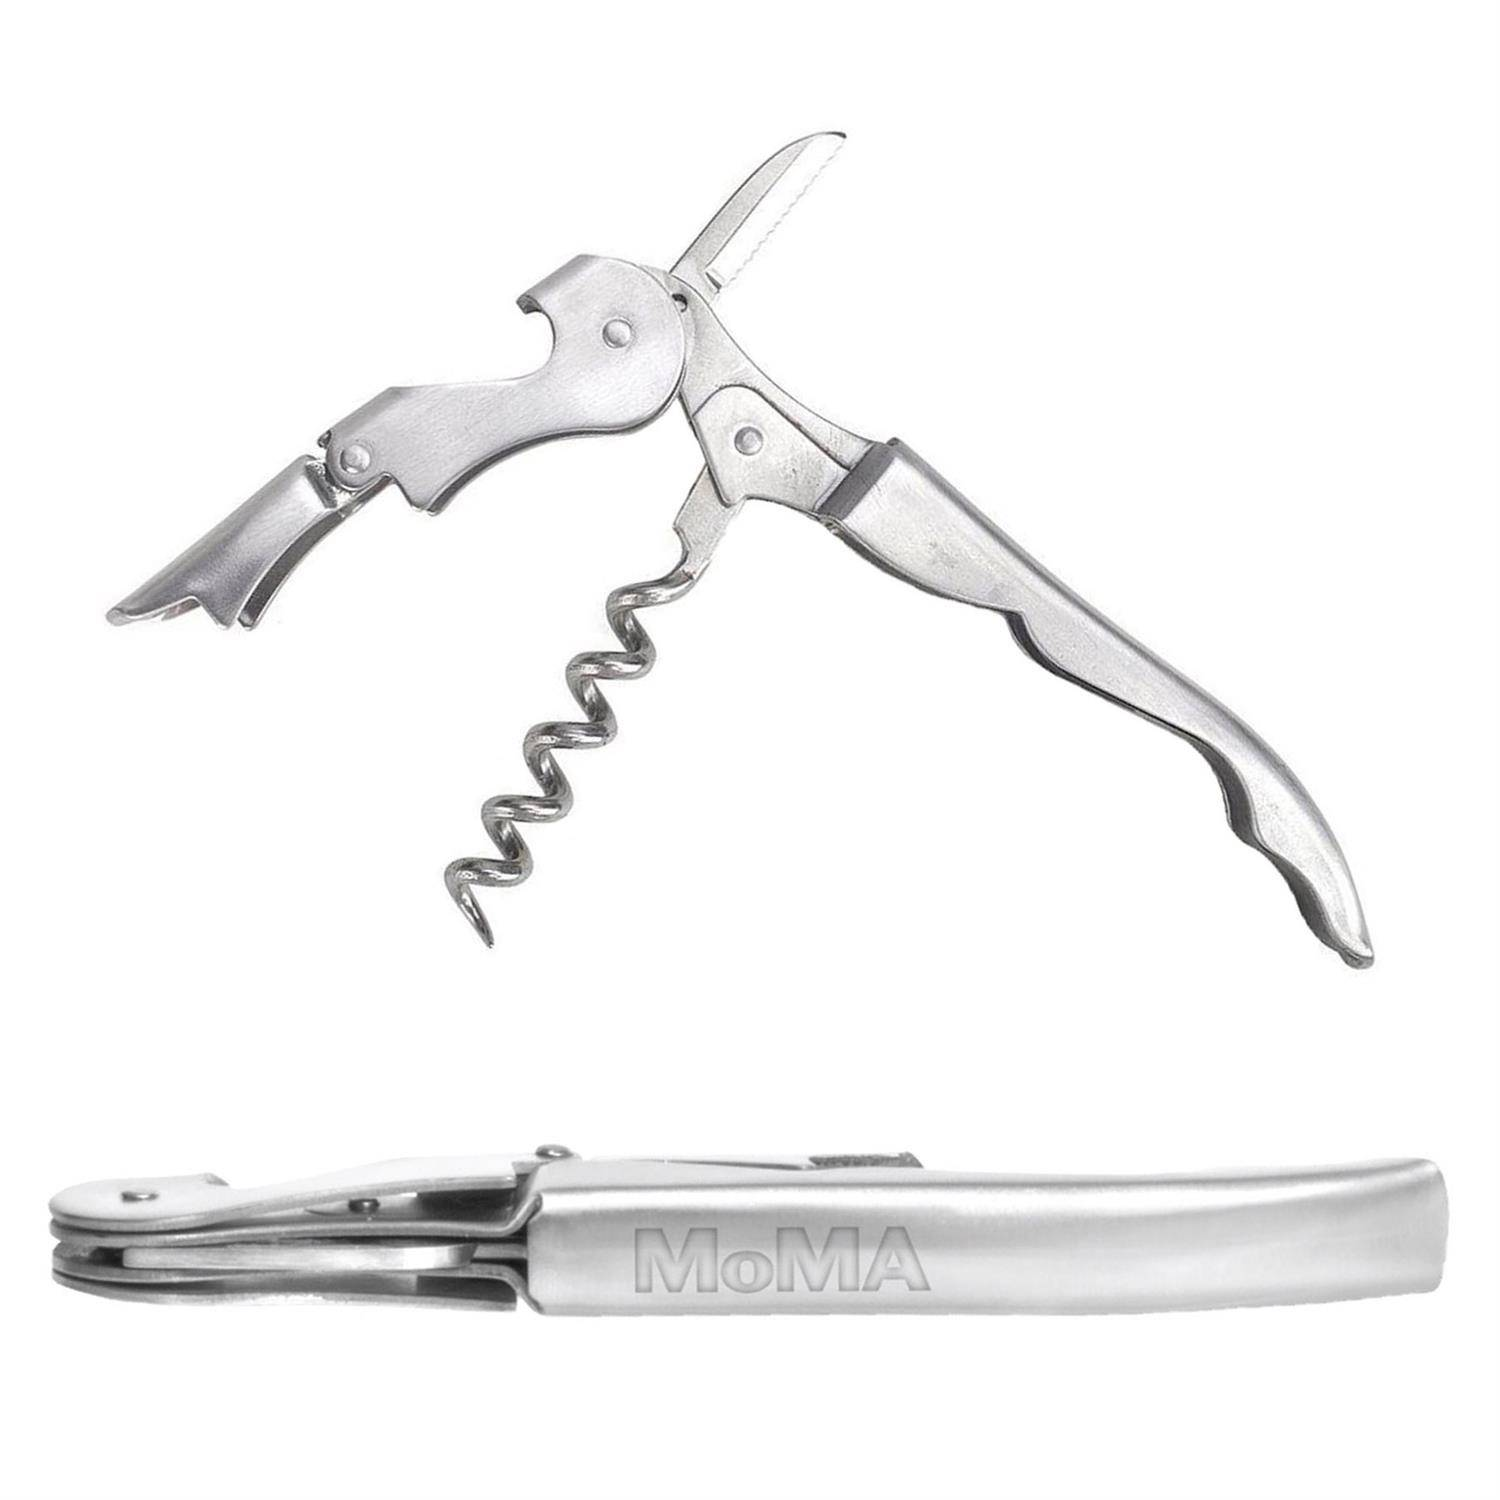 2535 - Double Jointed Corkscrew Bottle Opener